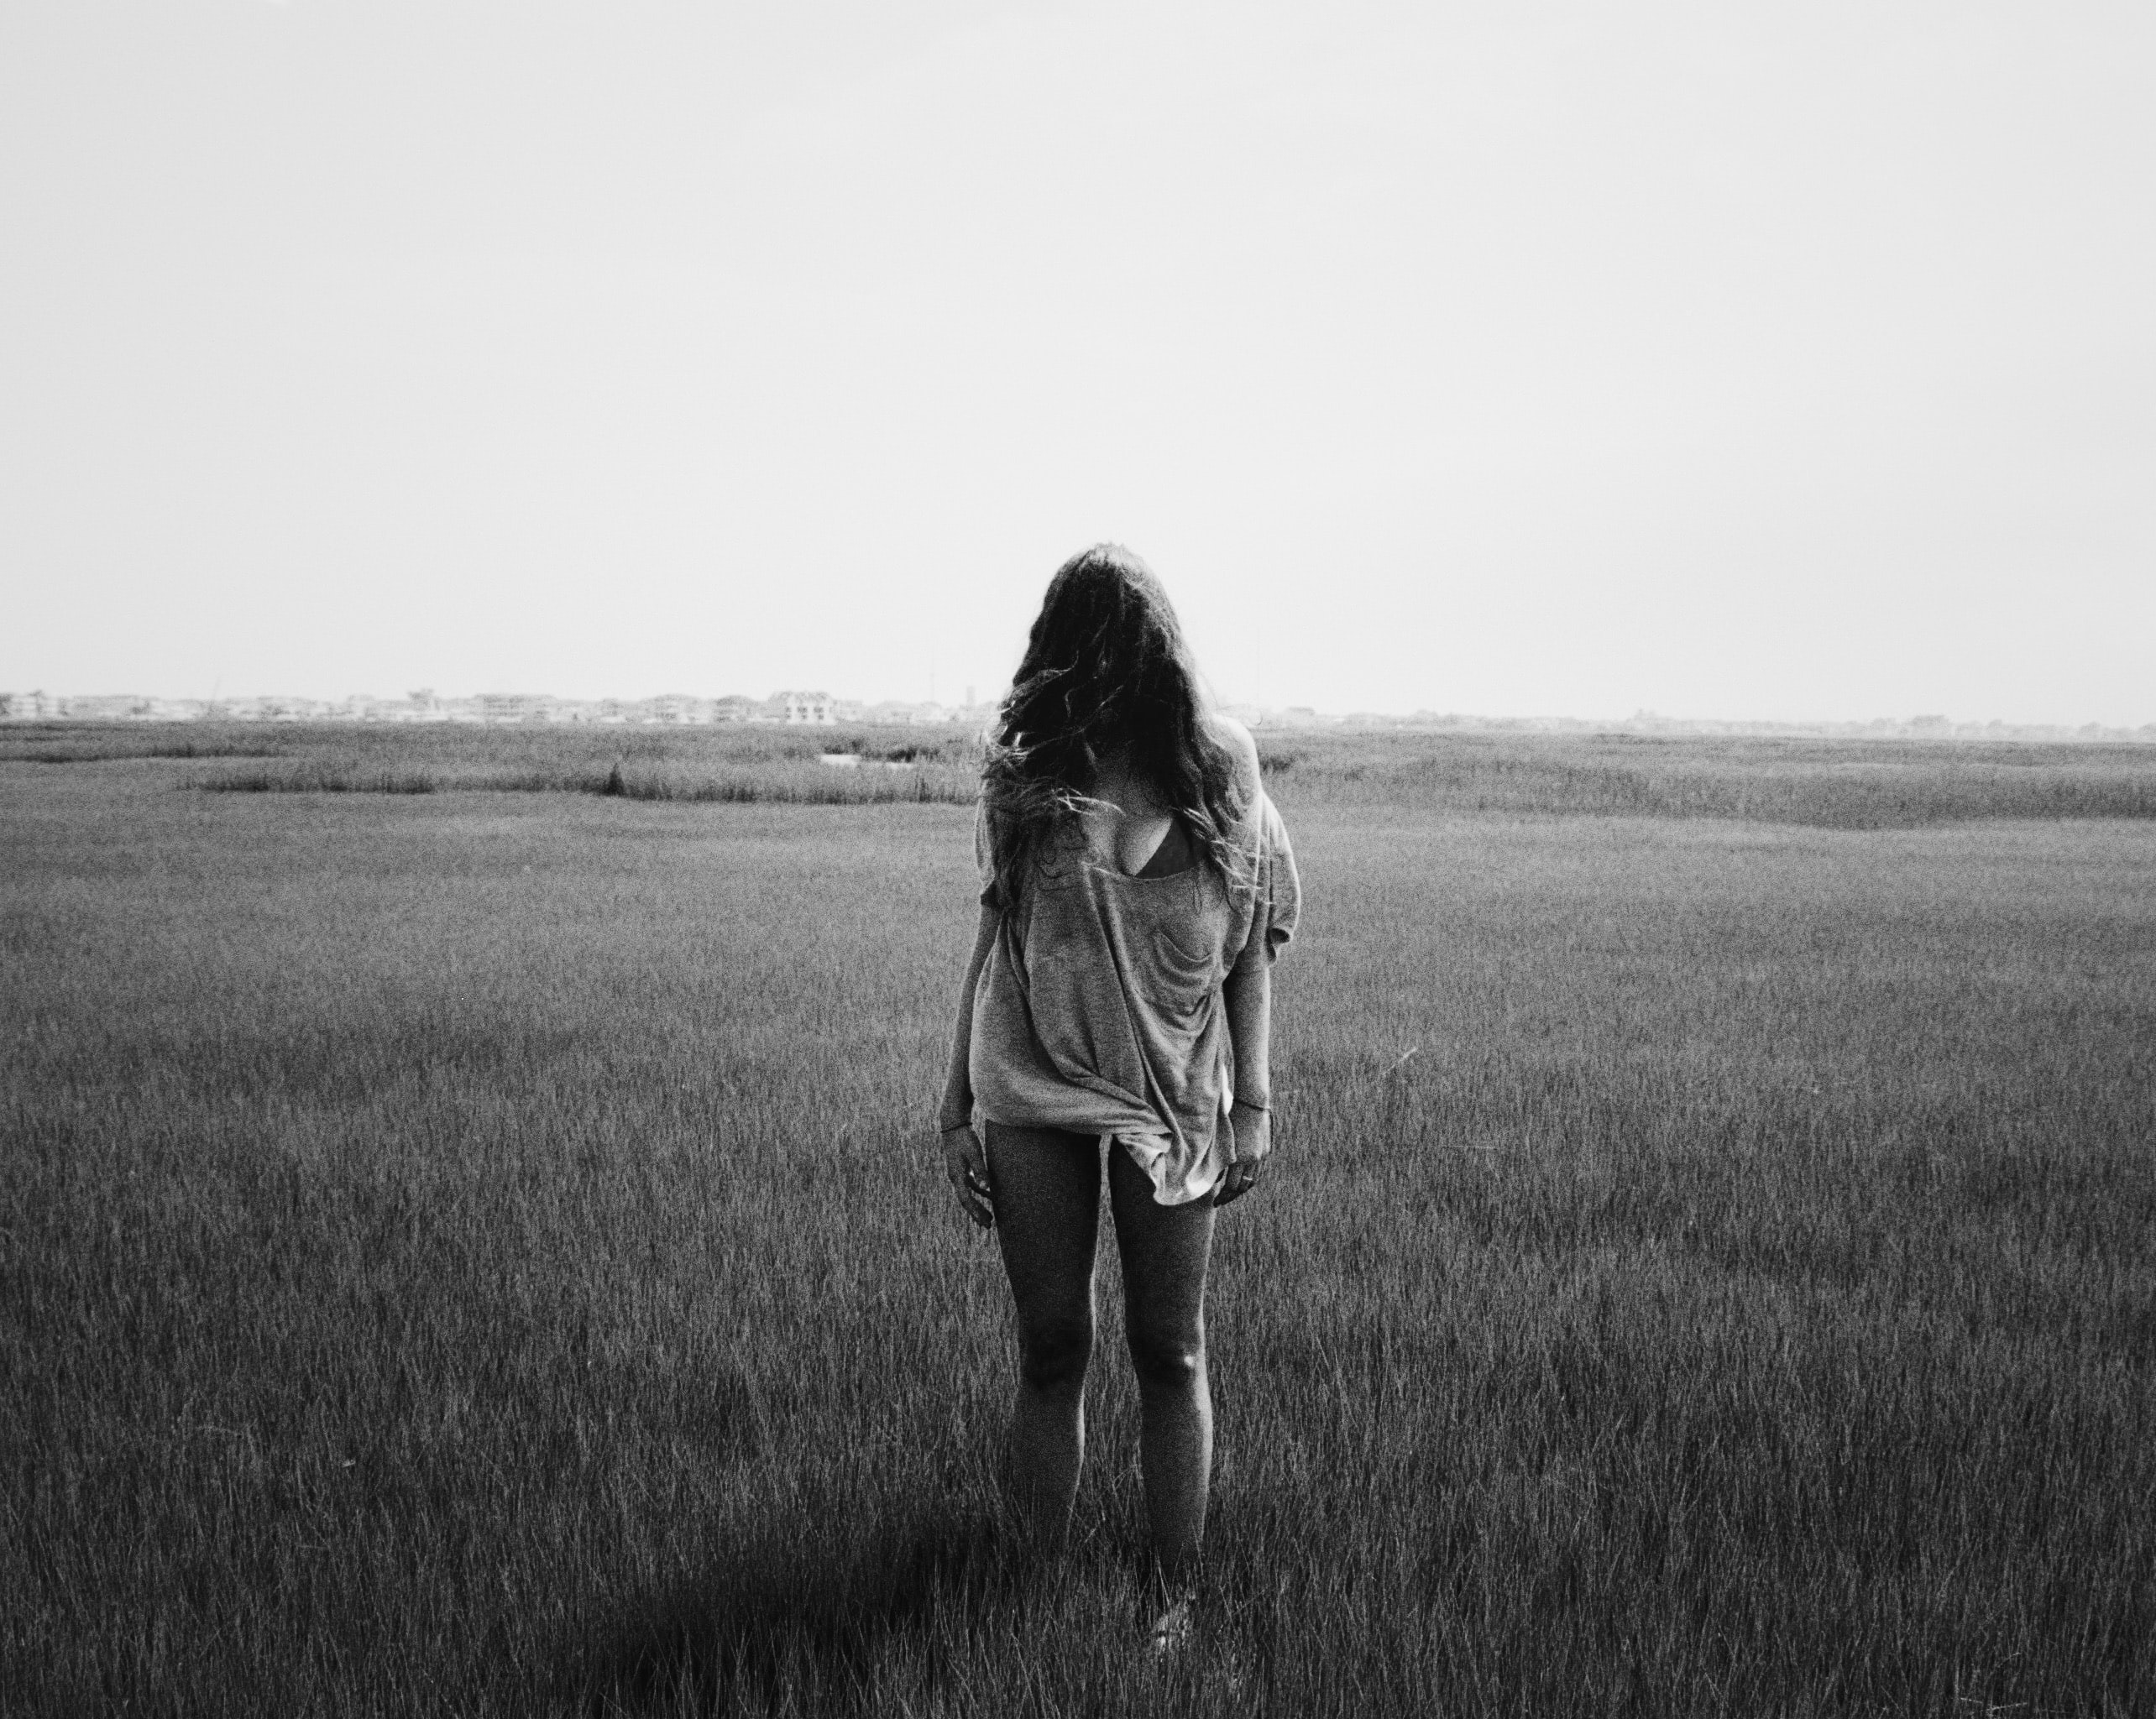 grayscale photography of standing woman on field during daytime